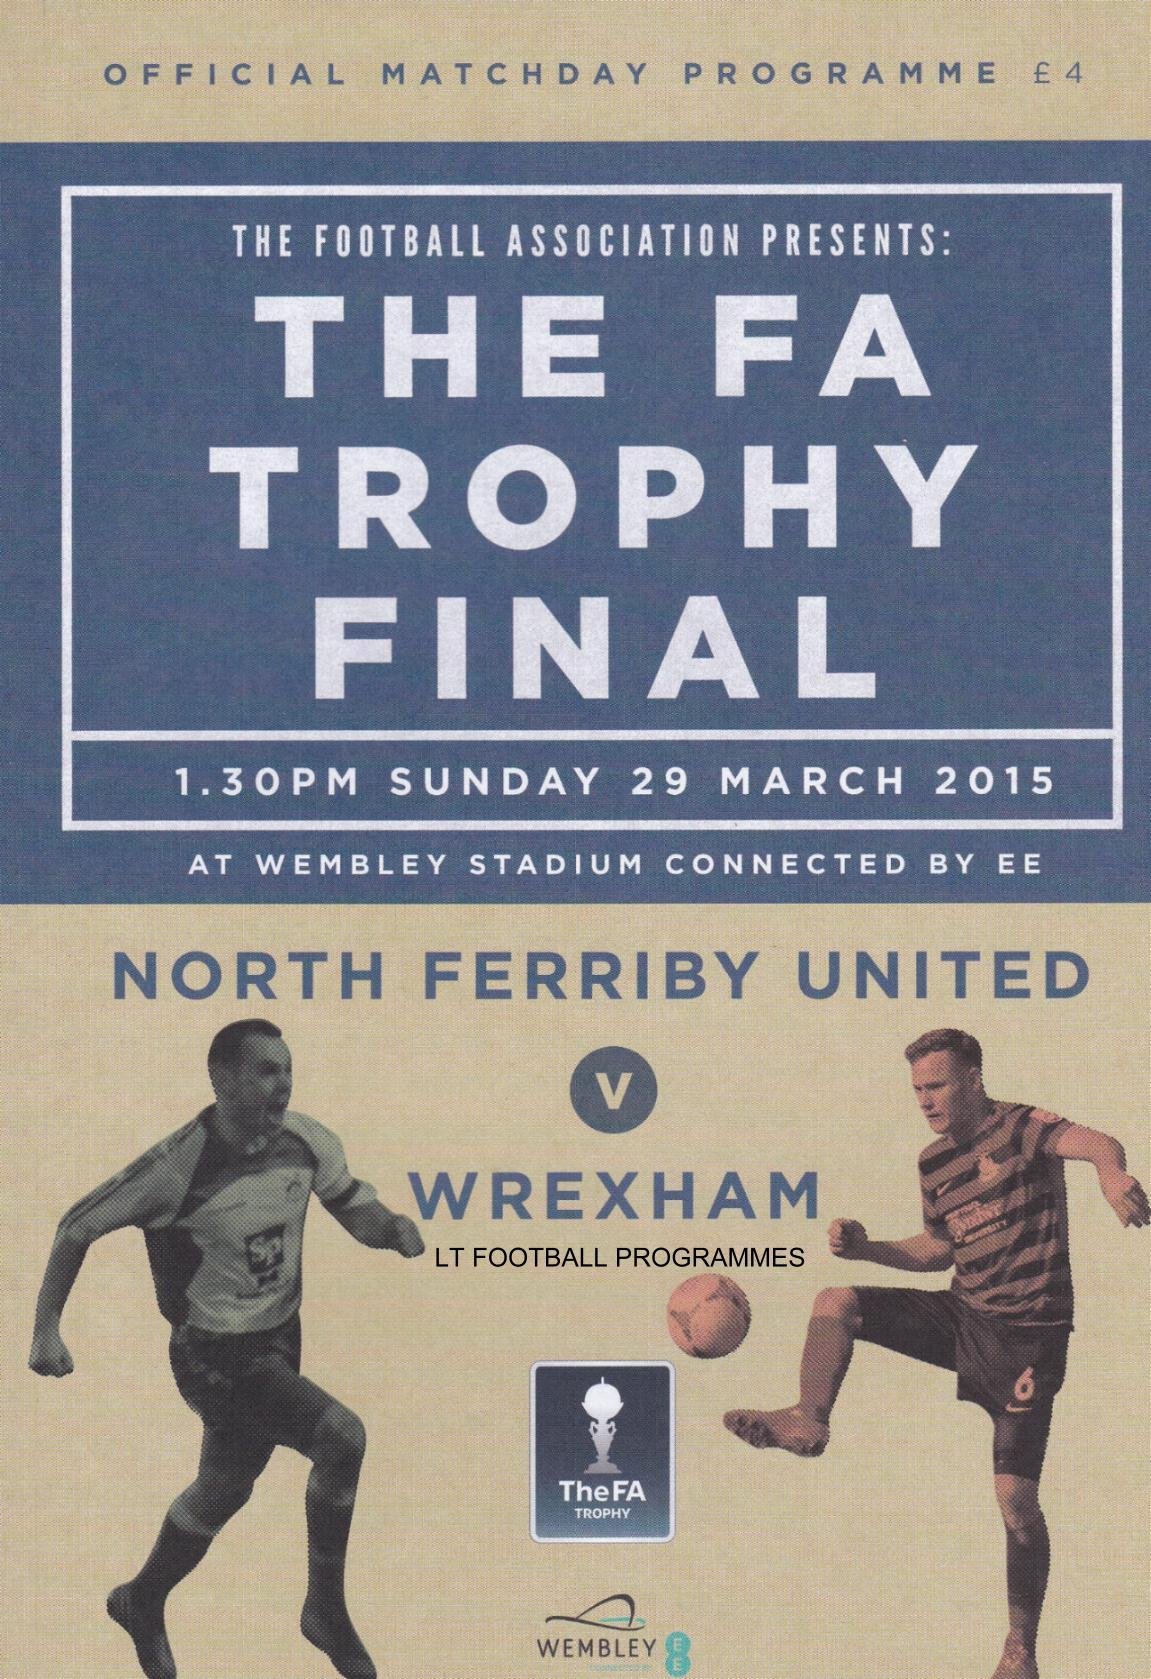 2015 FA TROPHY FINAL - NORTH FERRIBY UNITED v WREXHAM